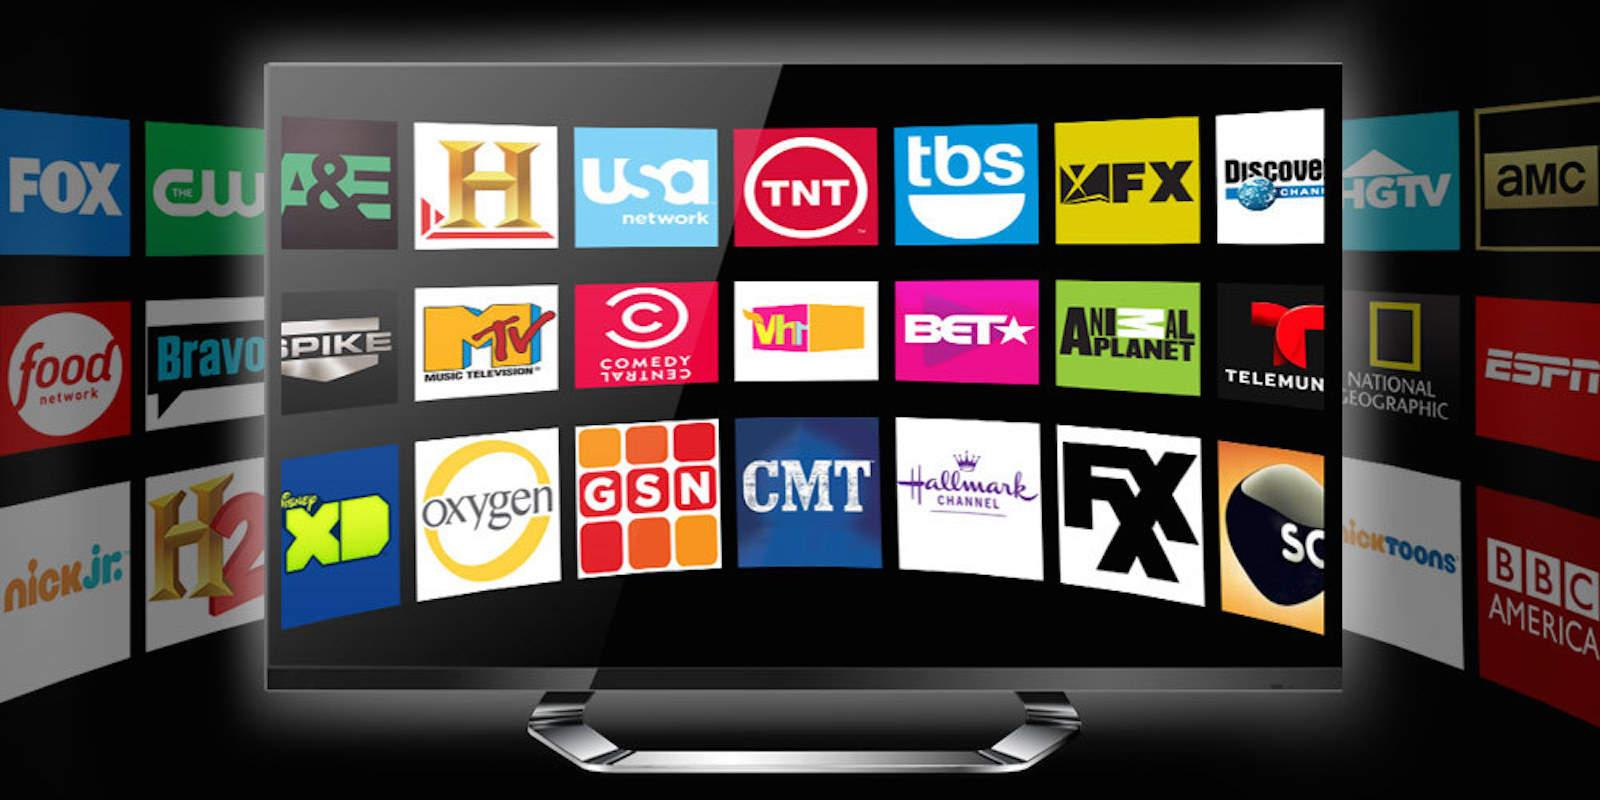 Logos of many TV networks.